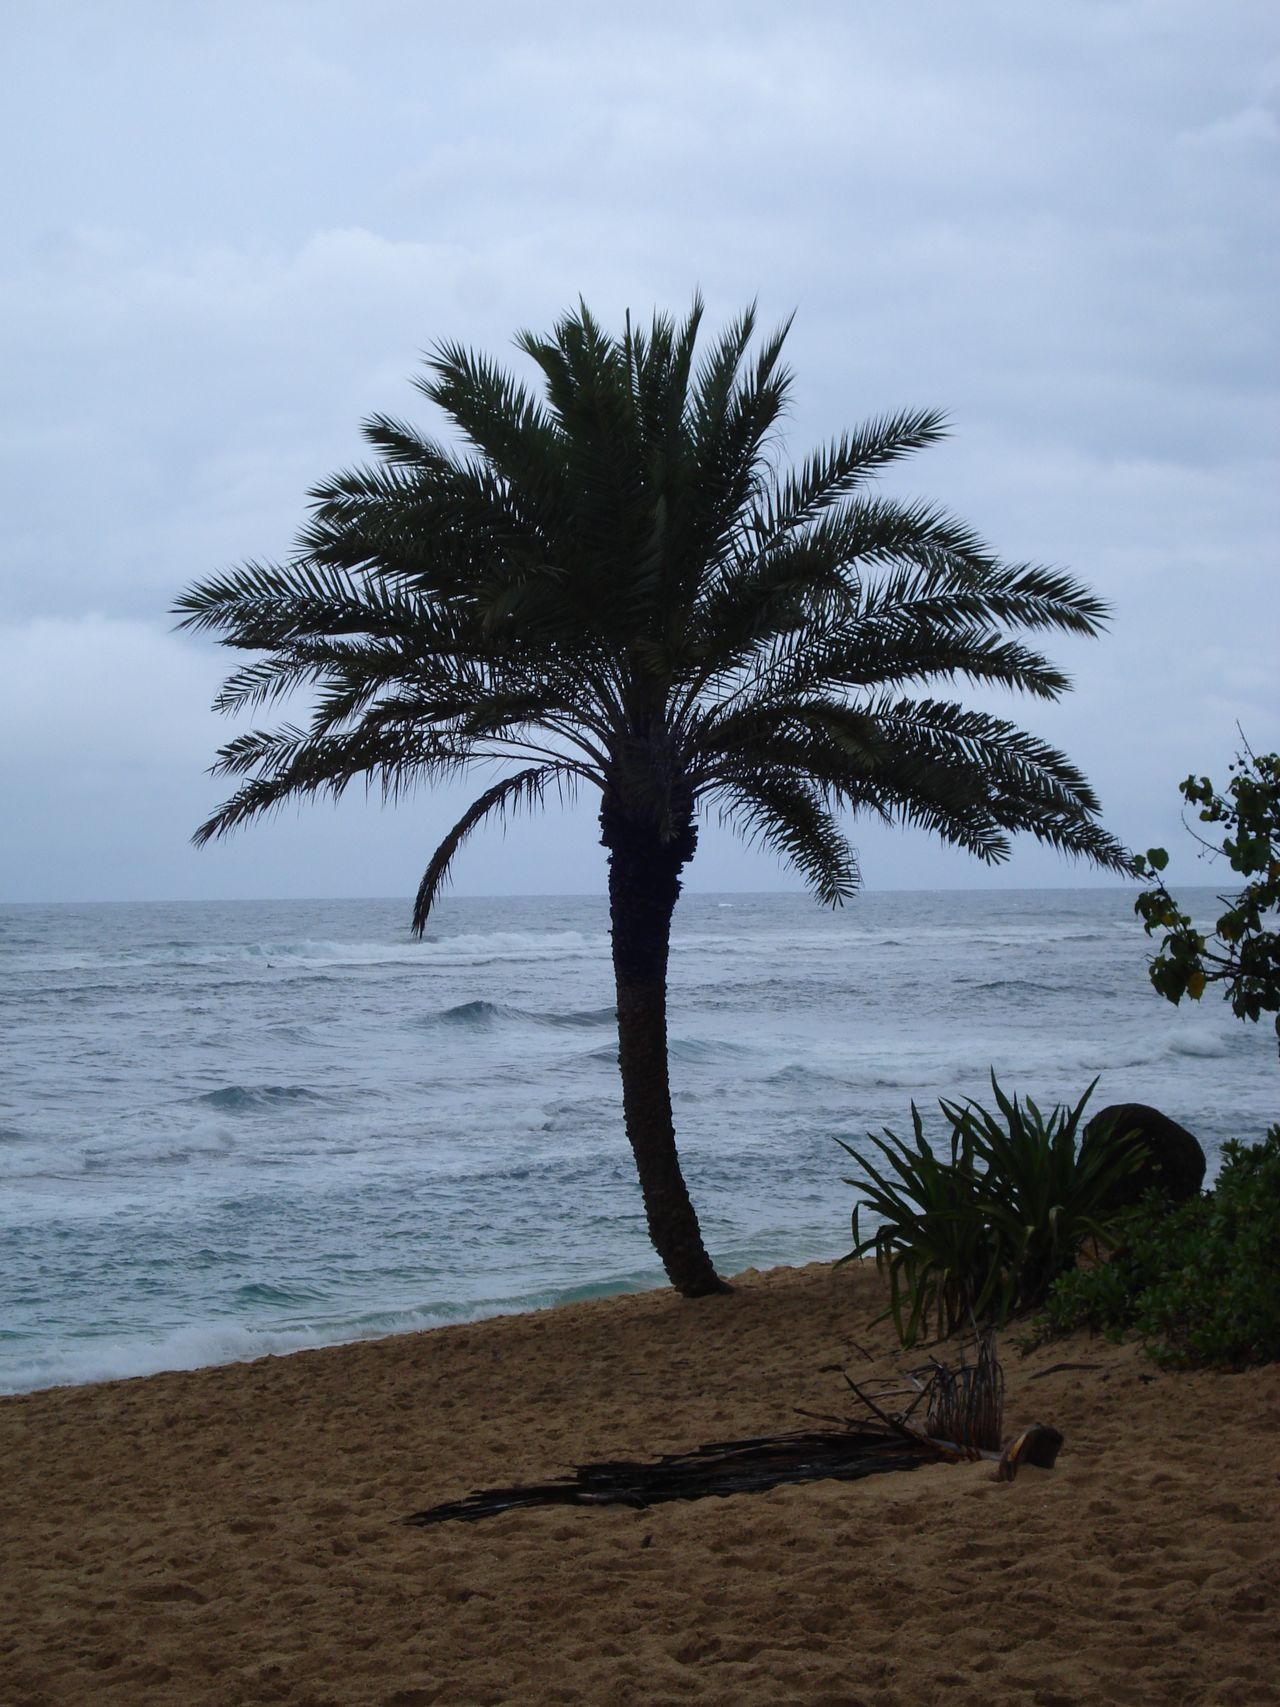 Beach Lifestyle Beach Palms Beach Photography Beach Time Beach Trees Beachphotography Date Palm North Shore Overcast Weather ❤ Palm Tree Sand Tropical Beaches Tropical Climate Tropical Fruit Tropical Paradise